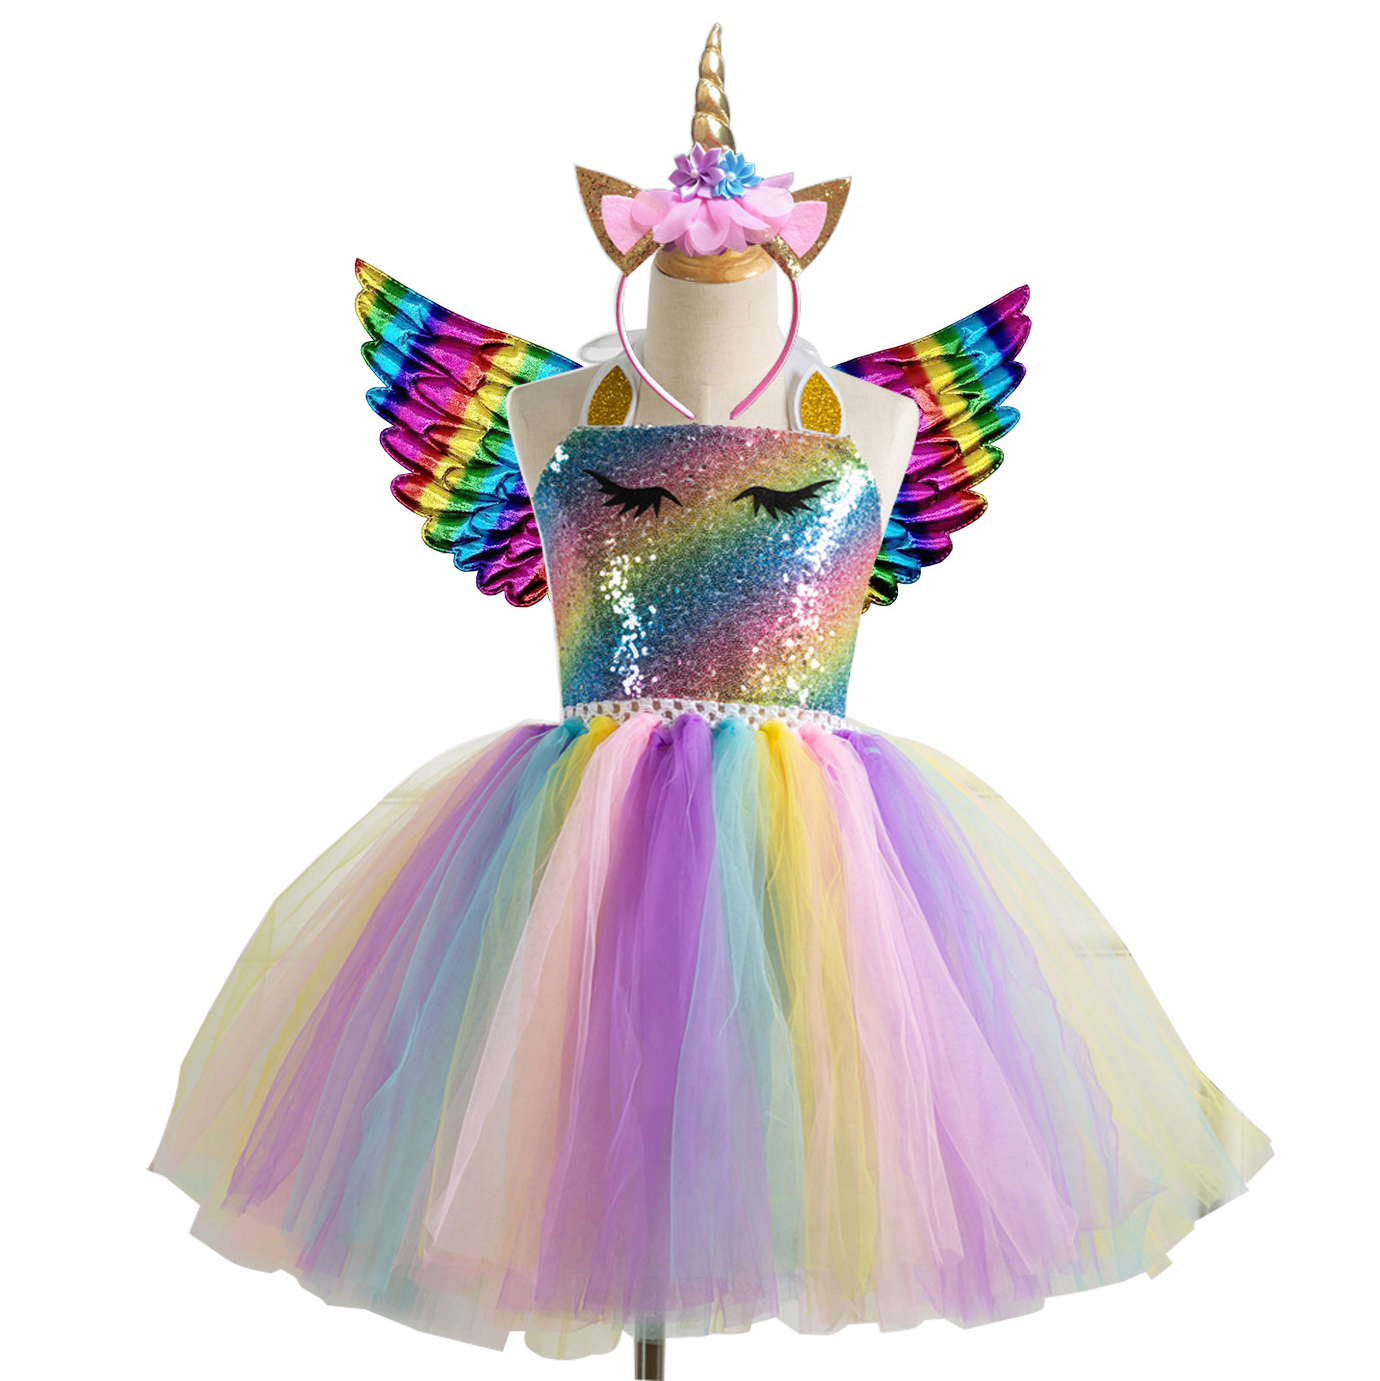 Kids Cosplay Flower Party Wear Unicorn Rainbow Tutu Dress Children New Year Costume For Girls Festival Clothing